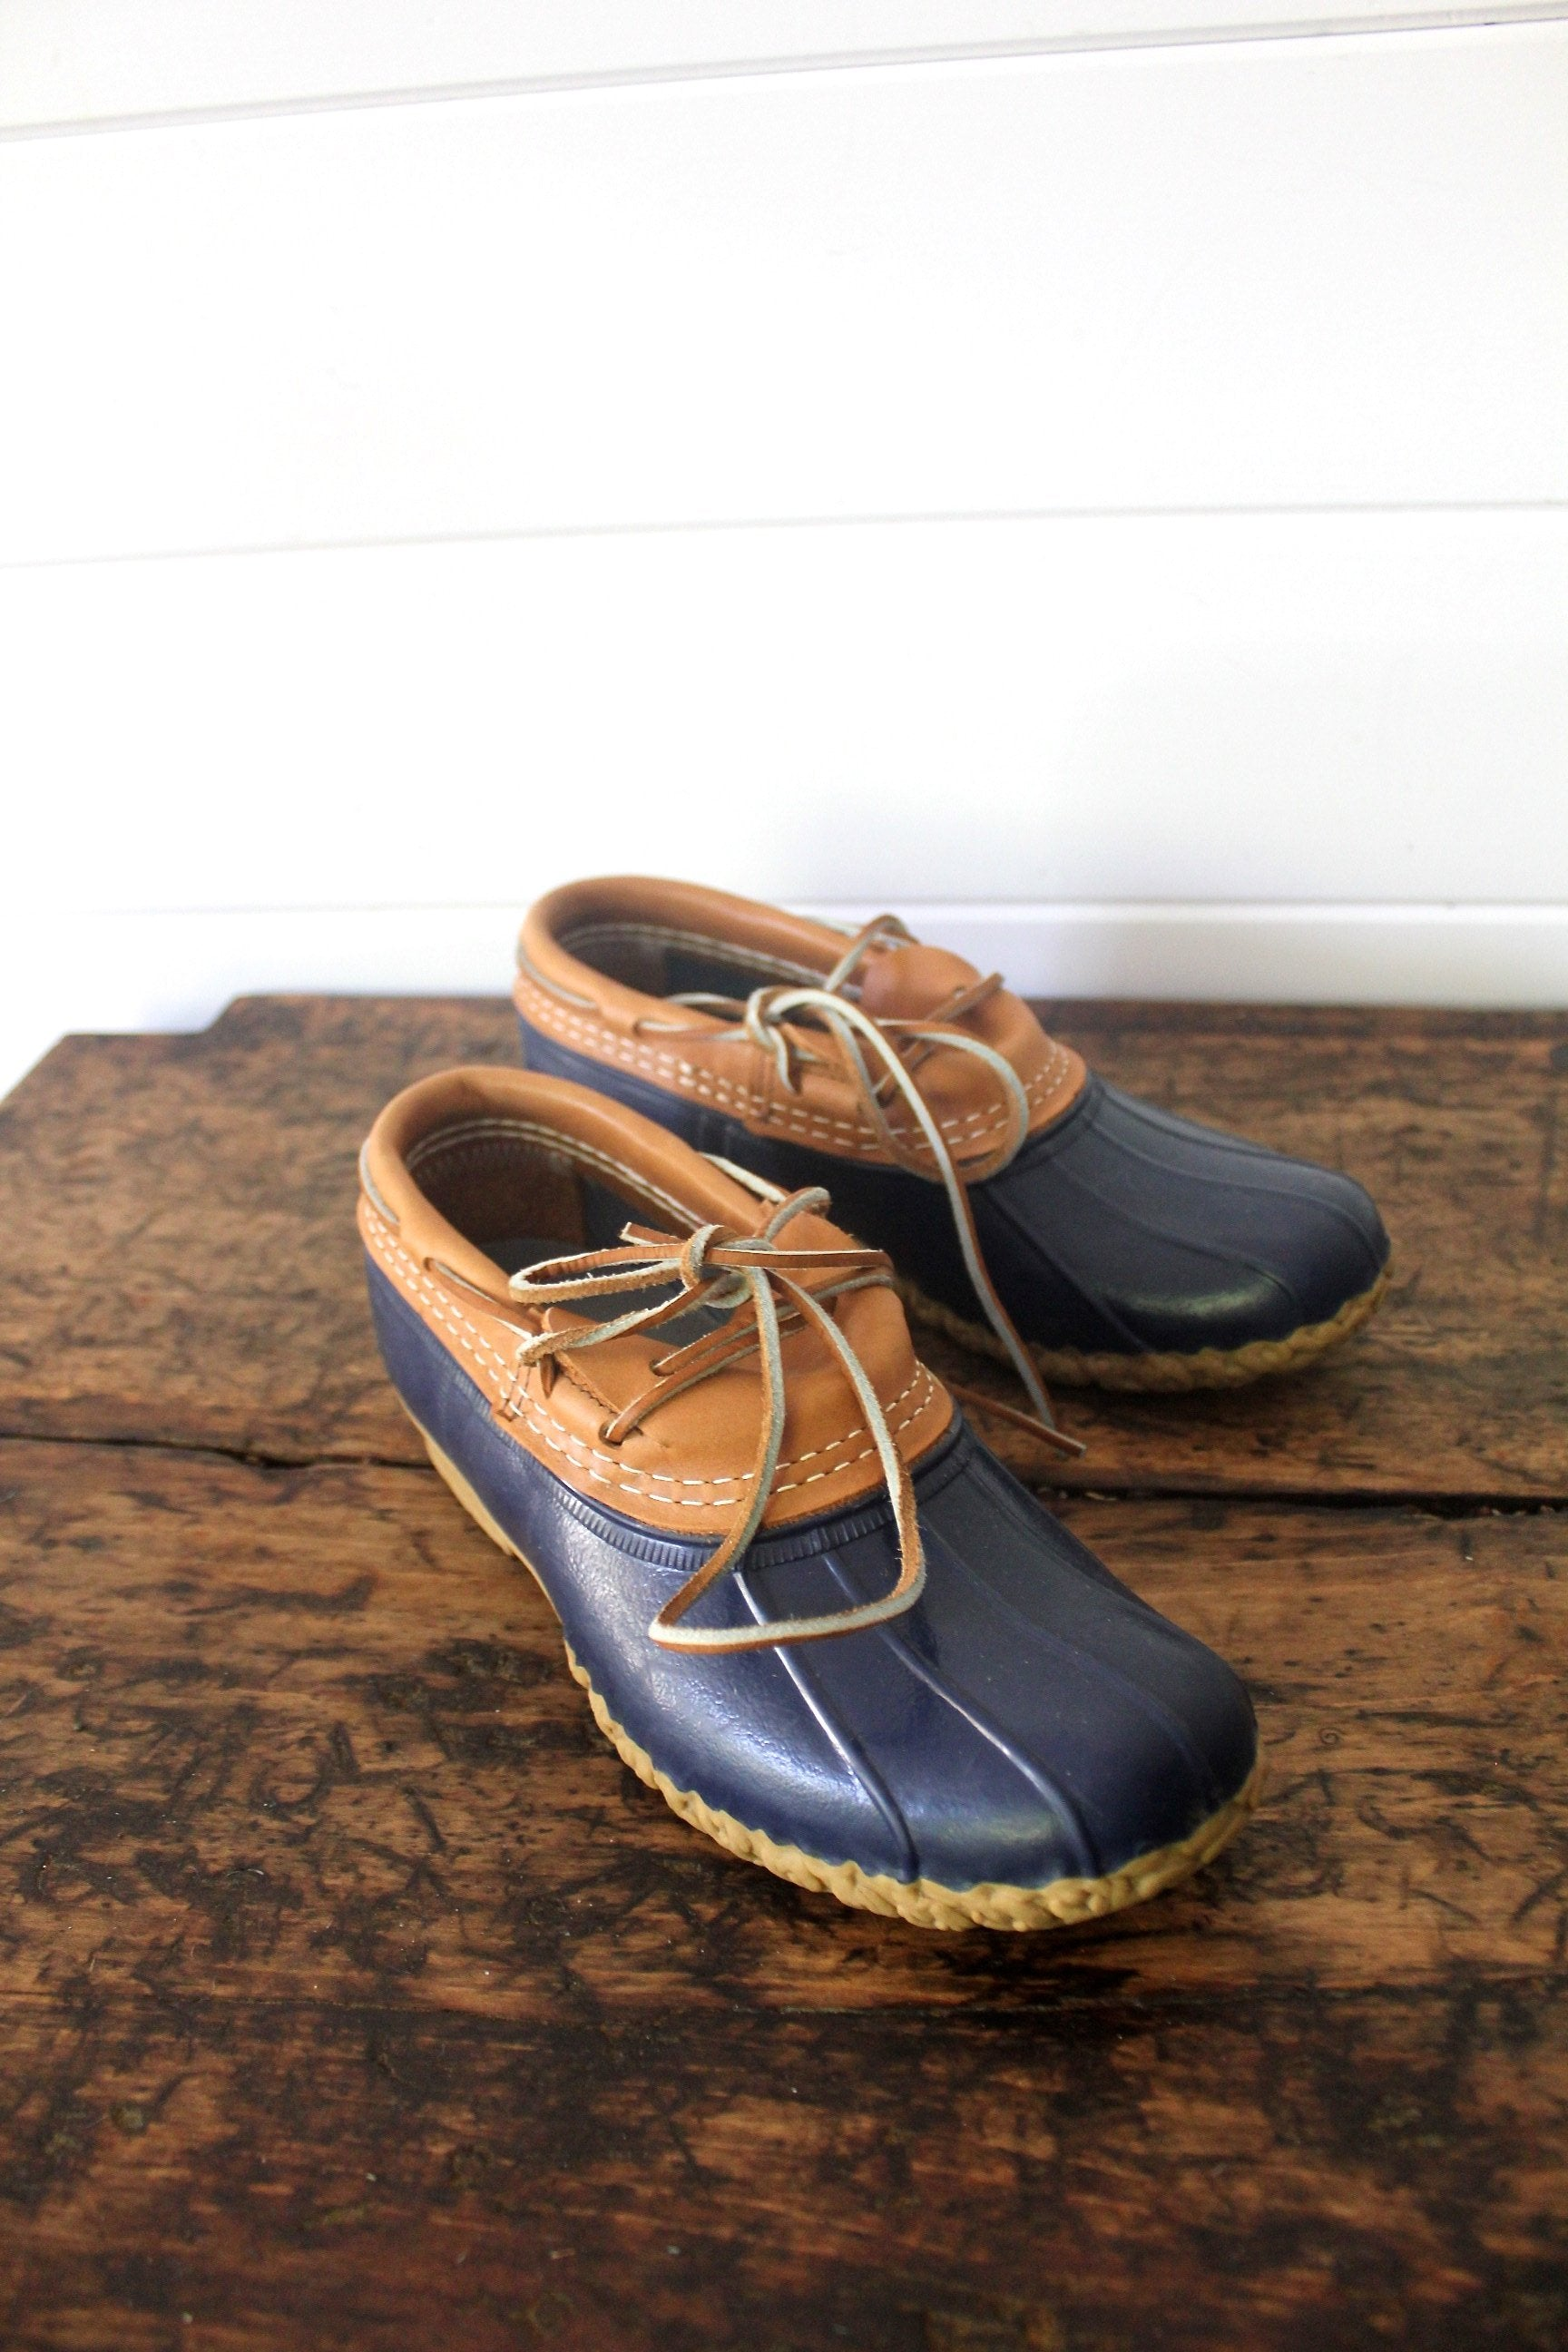 LL Bean Boots Rubber Moc - Diamonds & Rust